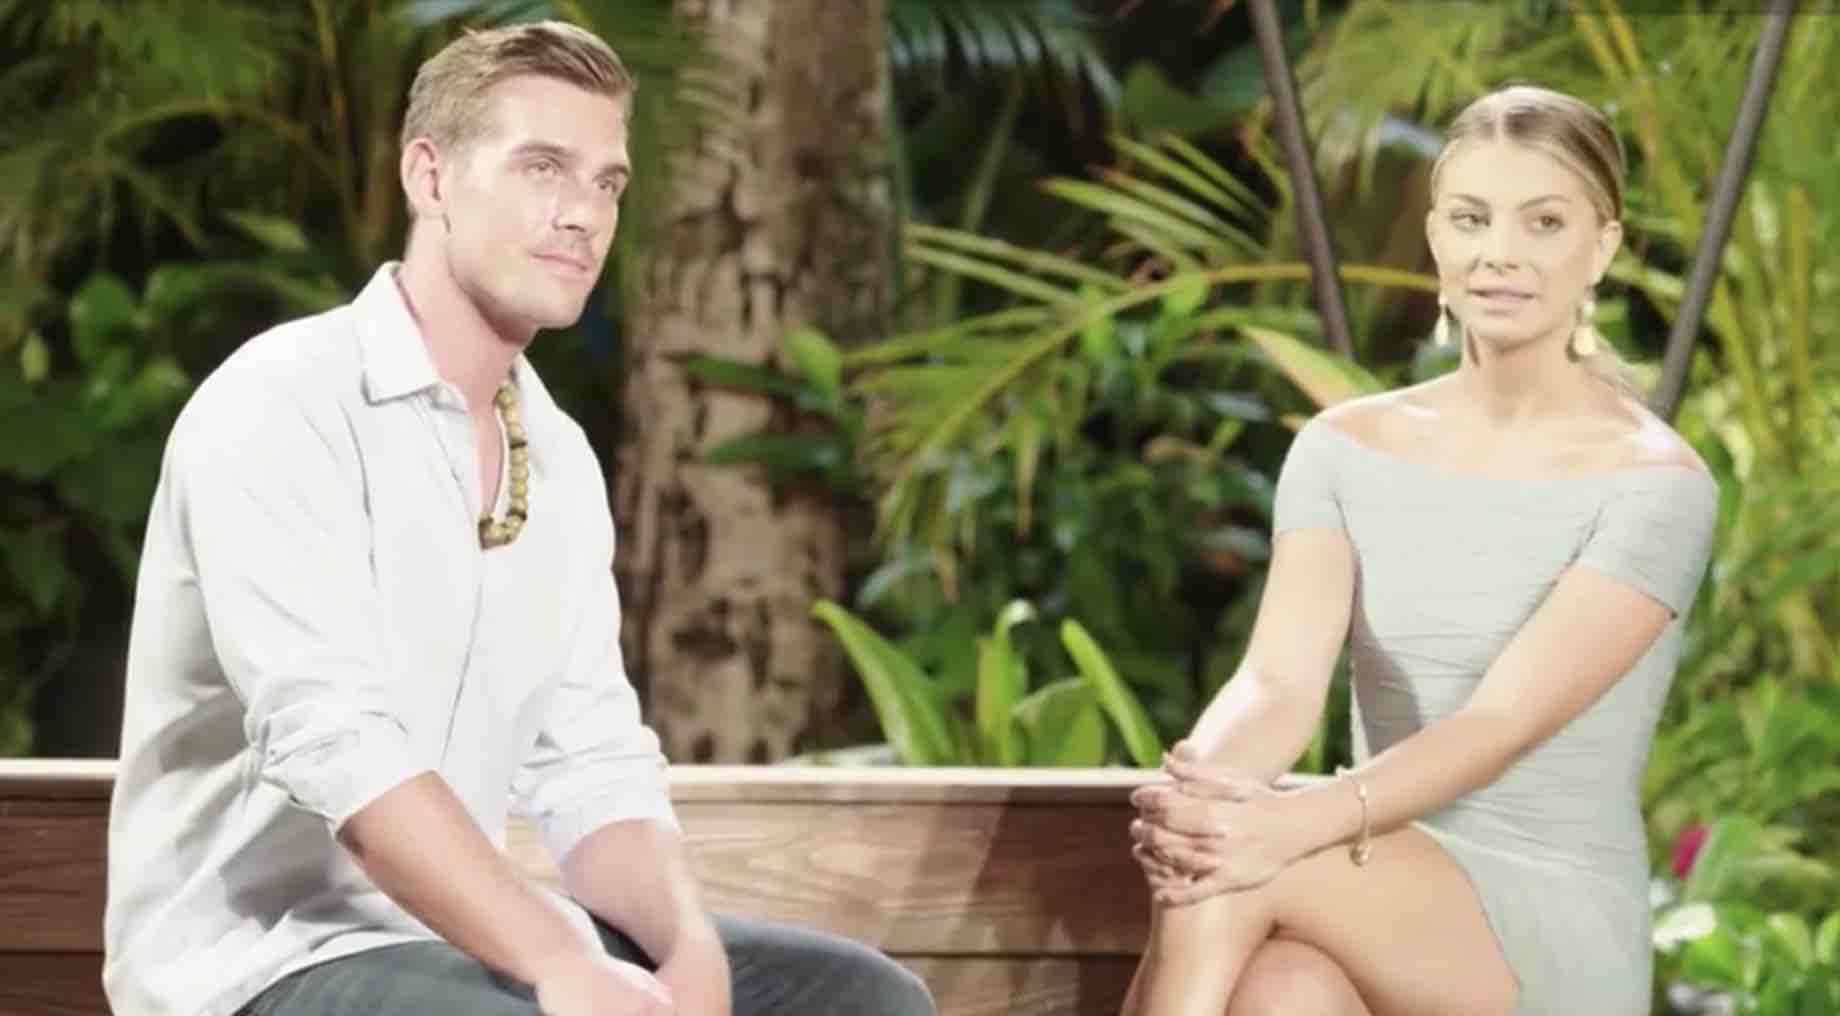 Temptation Island Season 3 Episode Recap: The Final Bonfire, Part 1